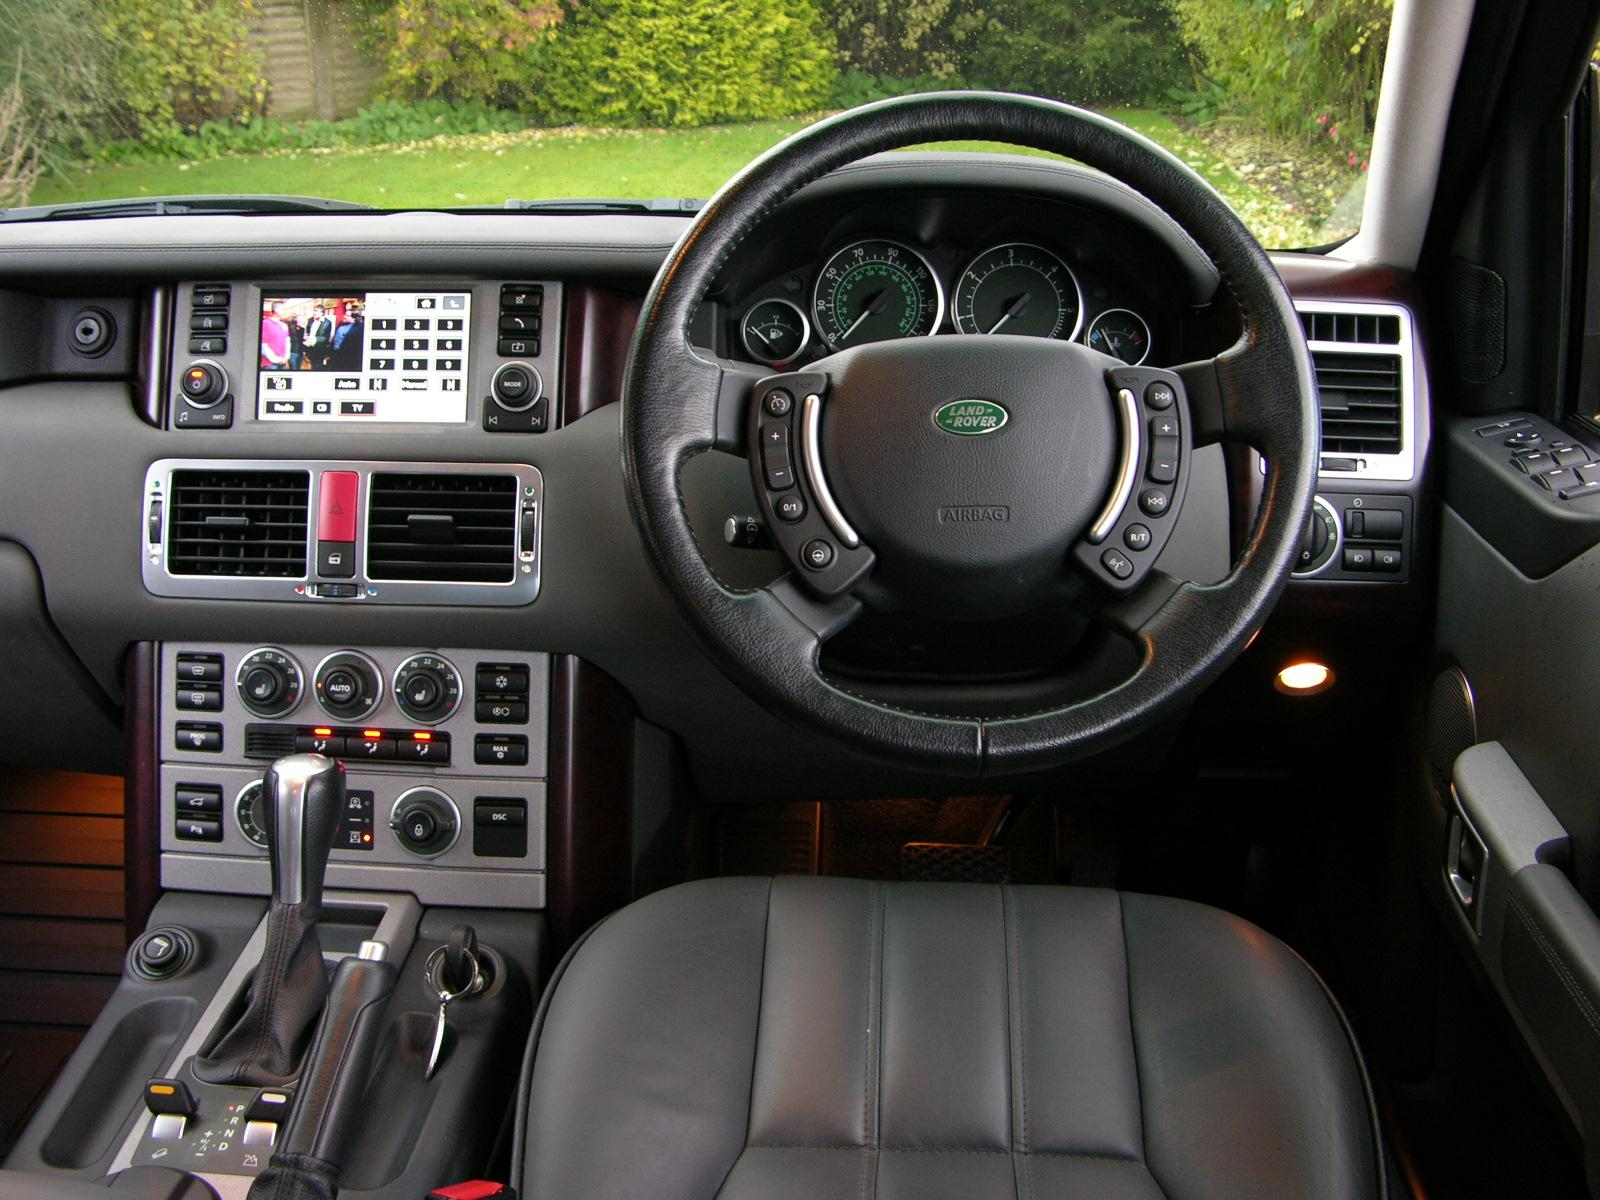 wiring diagram for 2002 land rover freelander get free image about wiring diagram. Black Bedroom Furniture Sets. Home Design Ideas